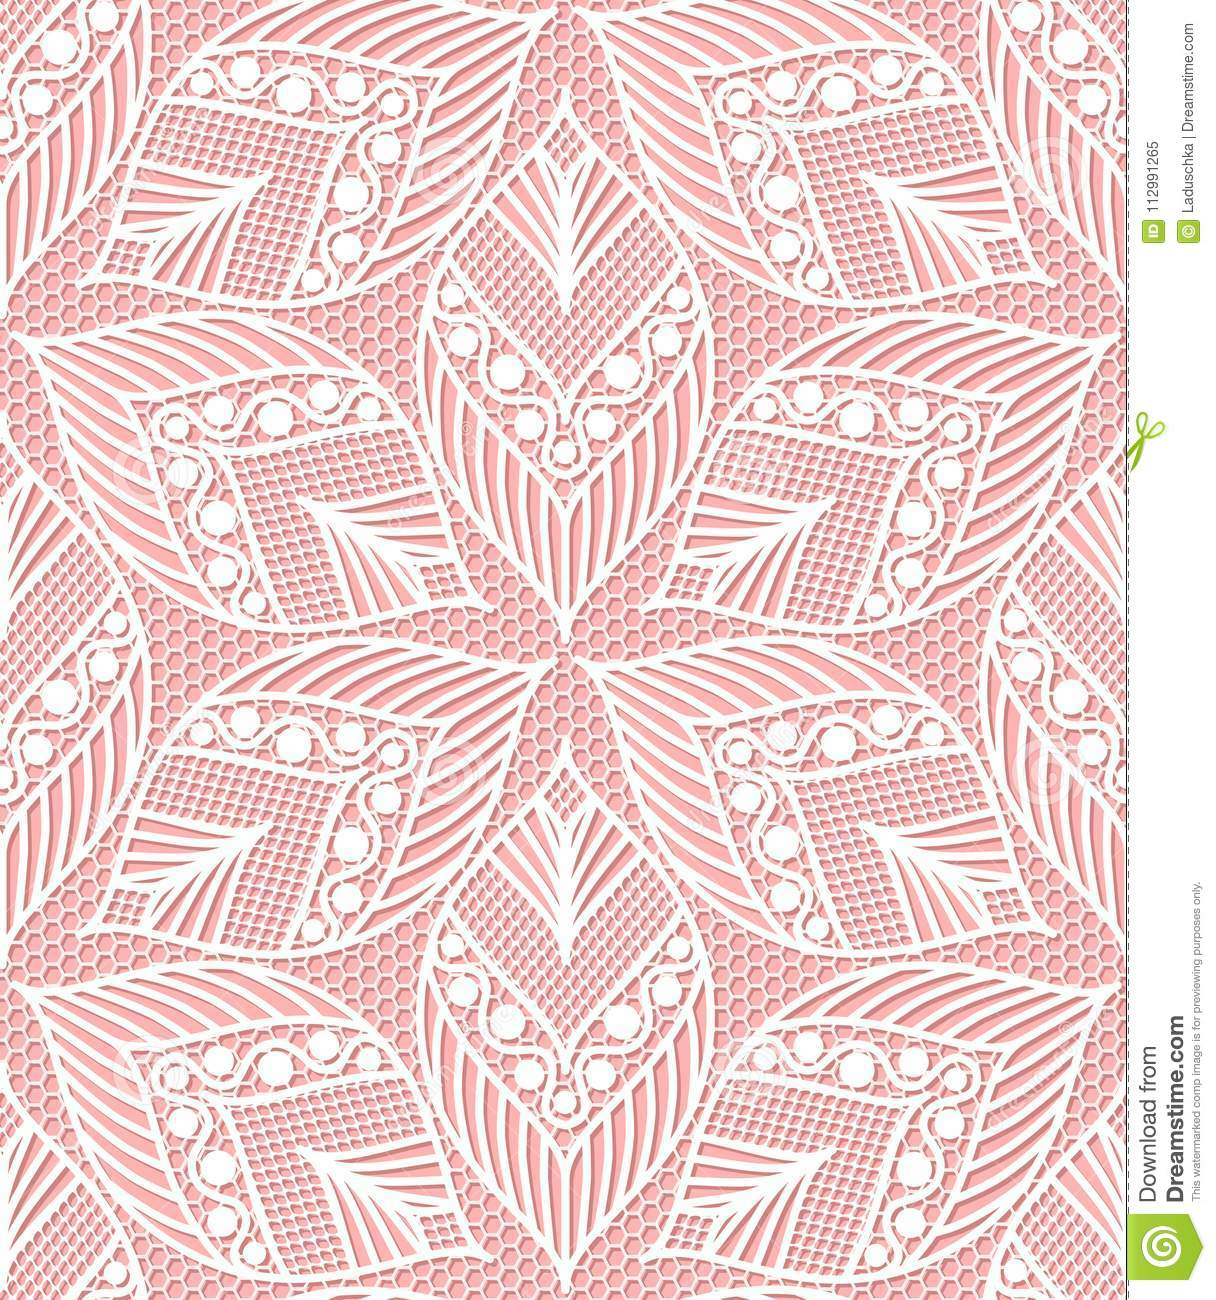 Seamless lace pattern made of abstarct ethnic ornamental leaves